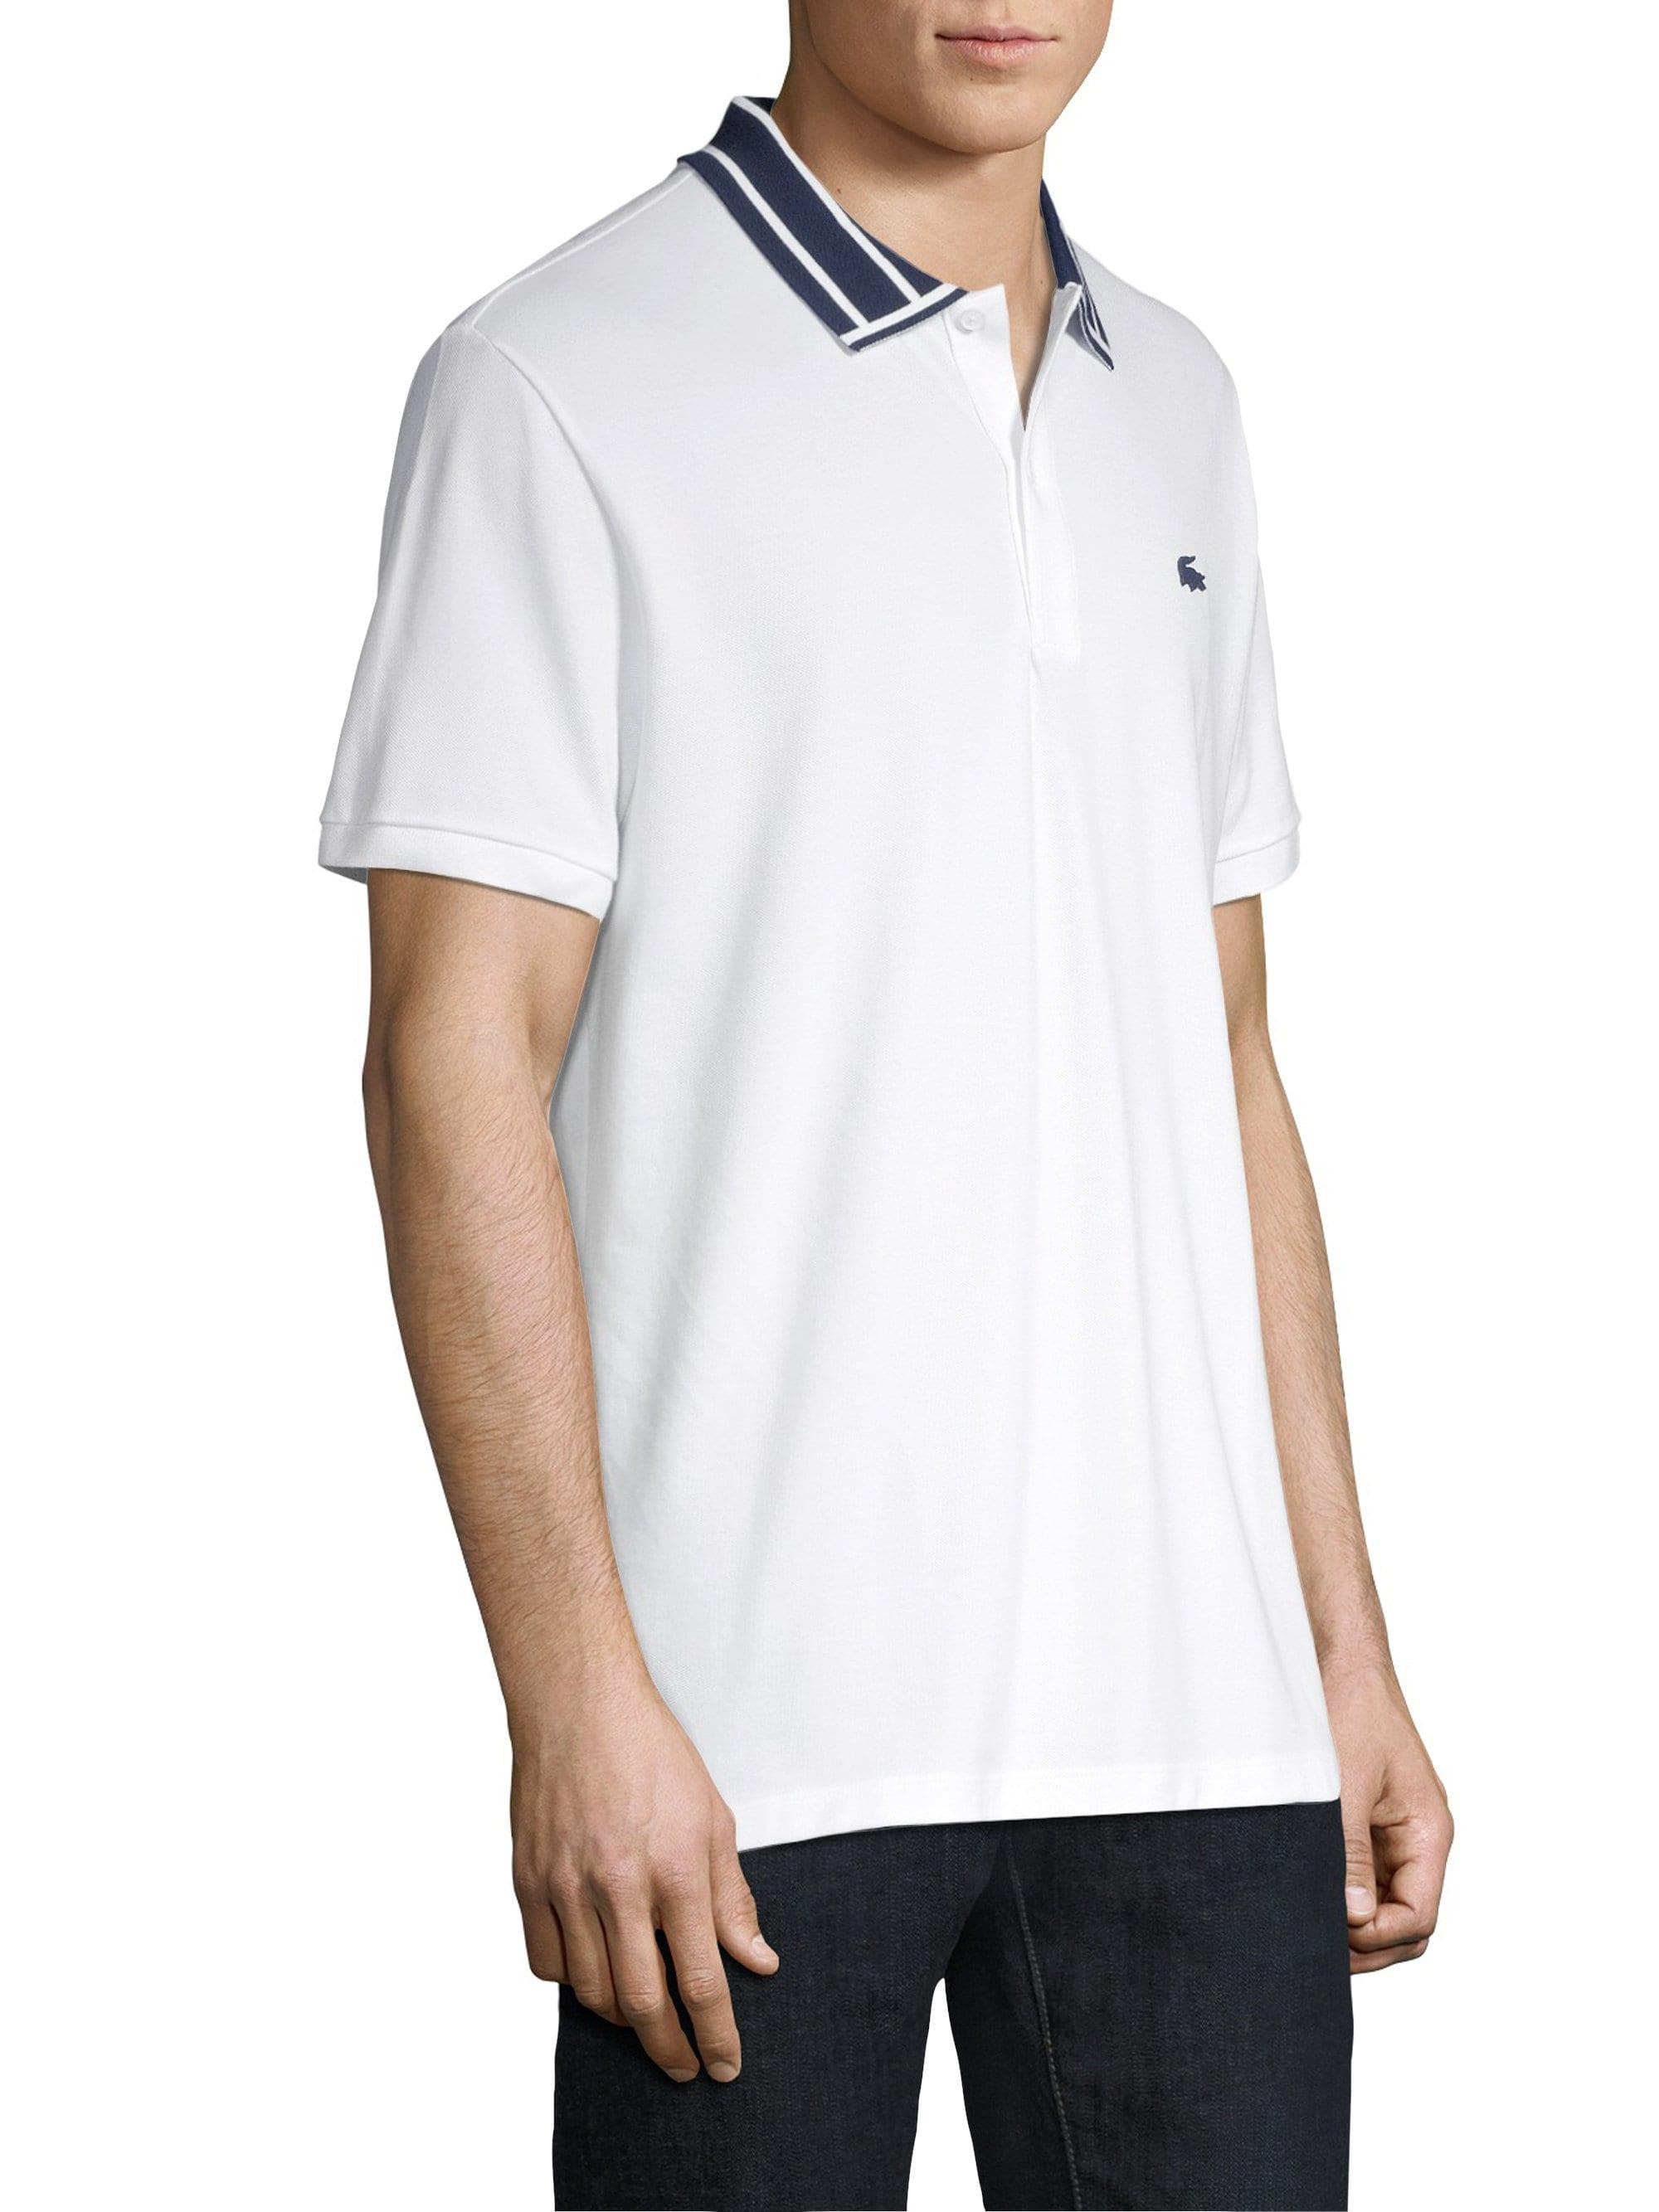 88b4b5f424b Lacoste Polo Shirt Size 7 – EDGE Engineering and Consulting Limited